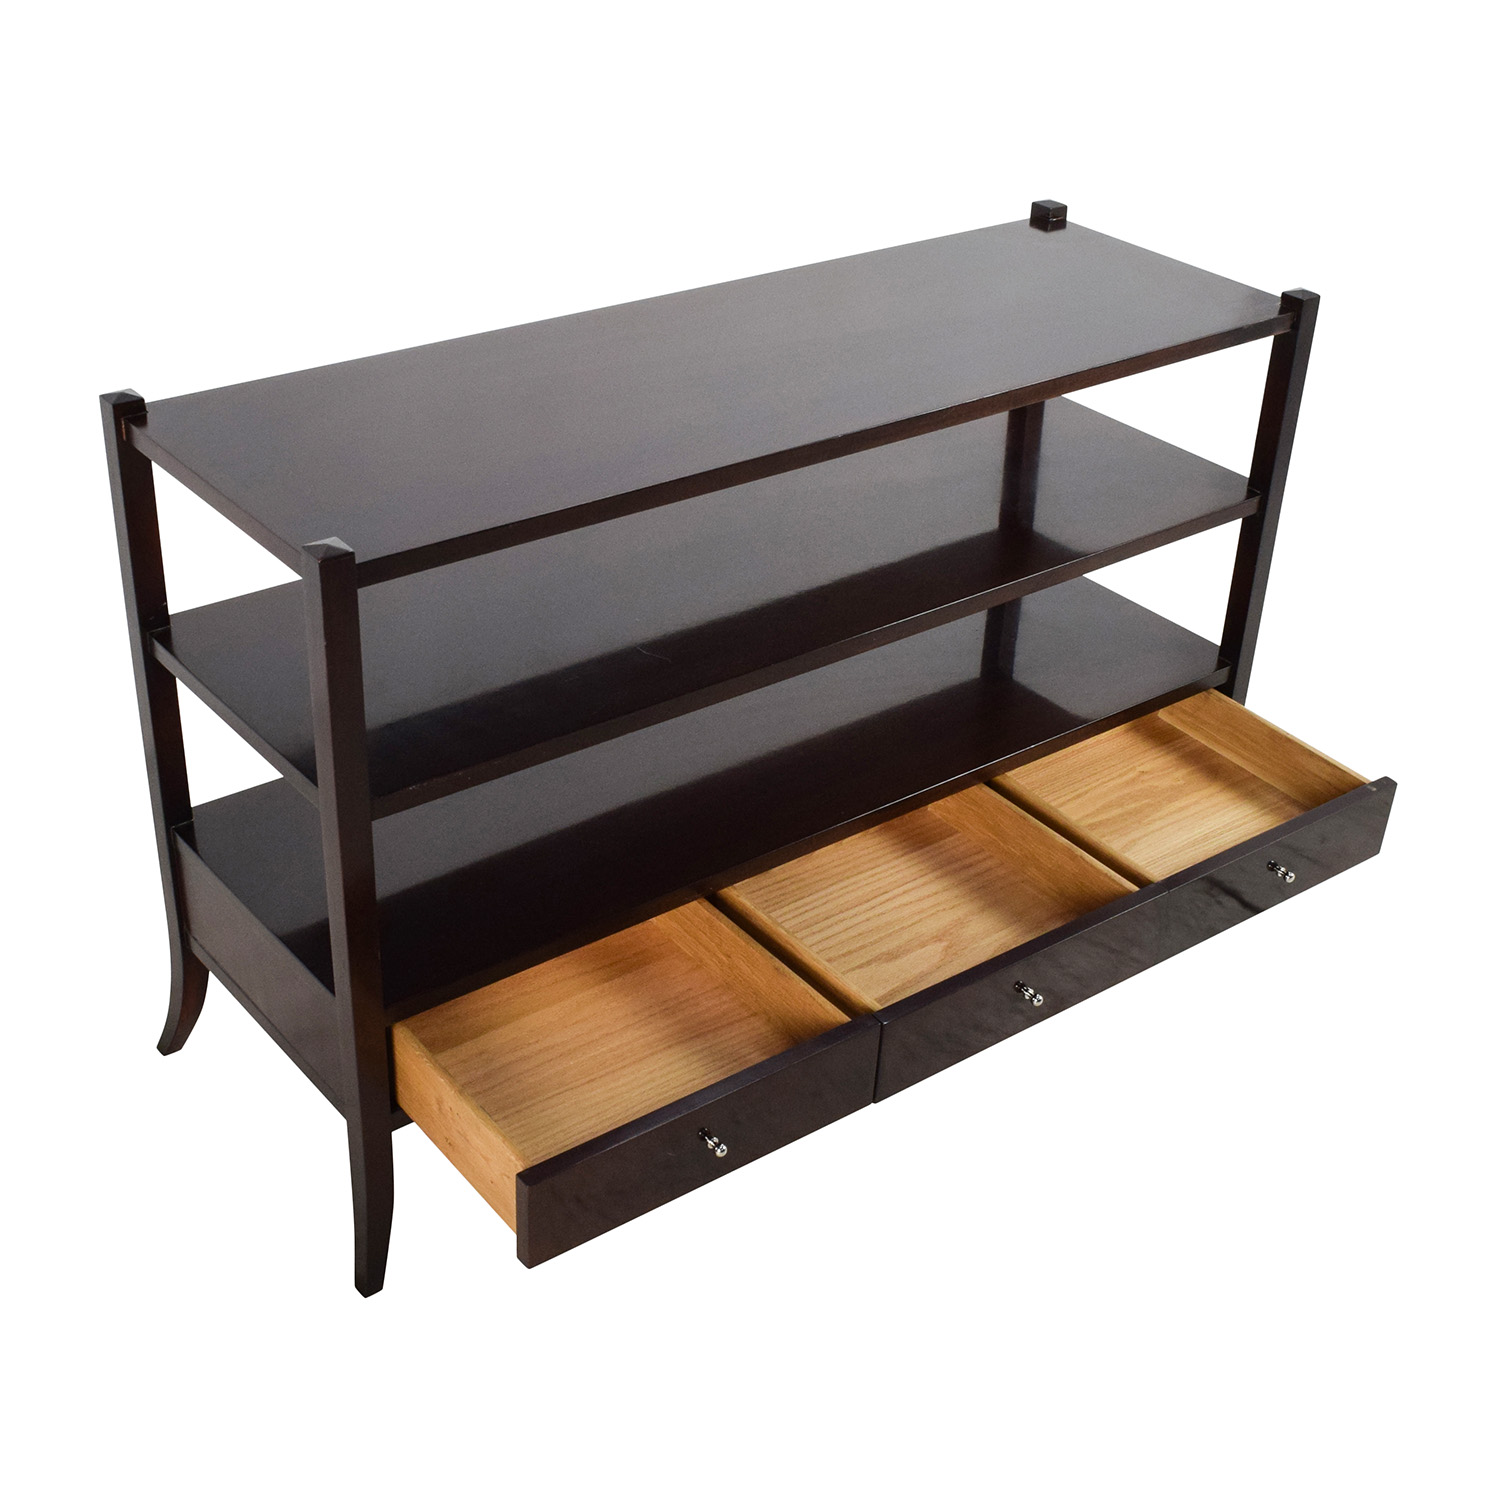 77 off baker baker sofa side table storage for Sofa side table